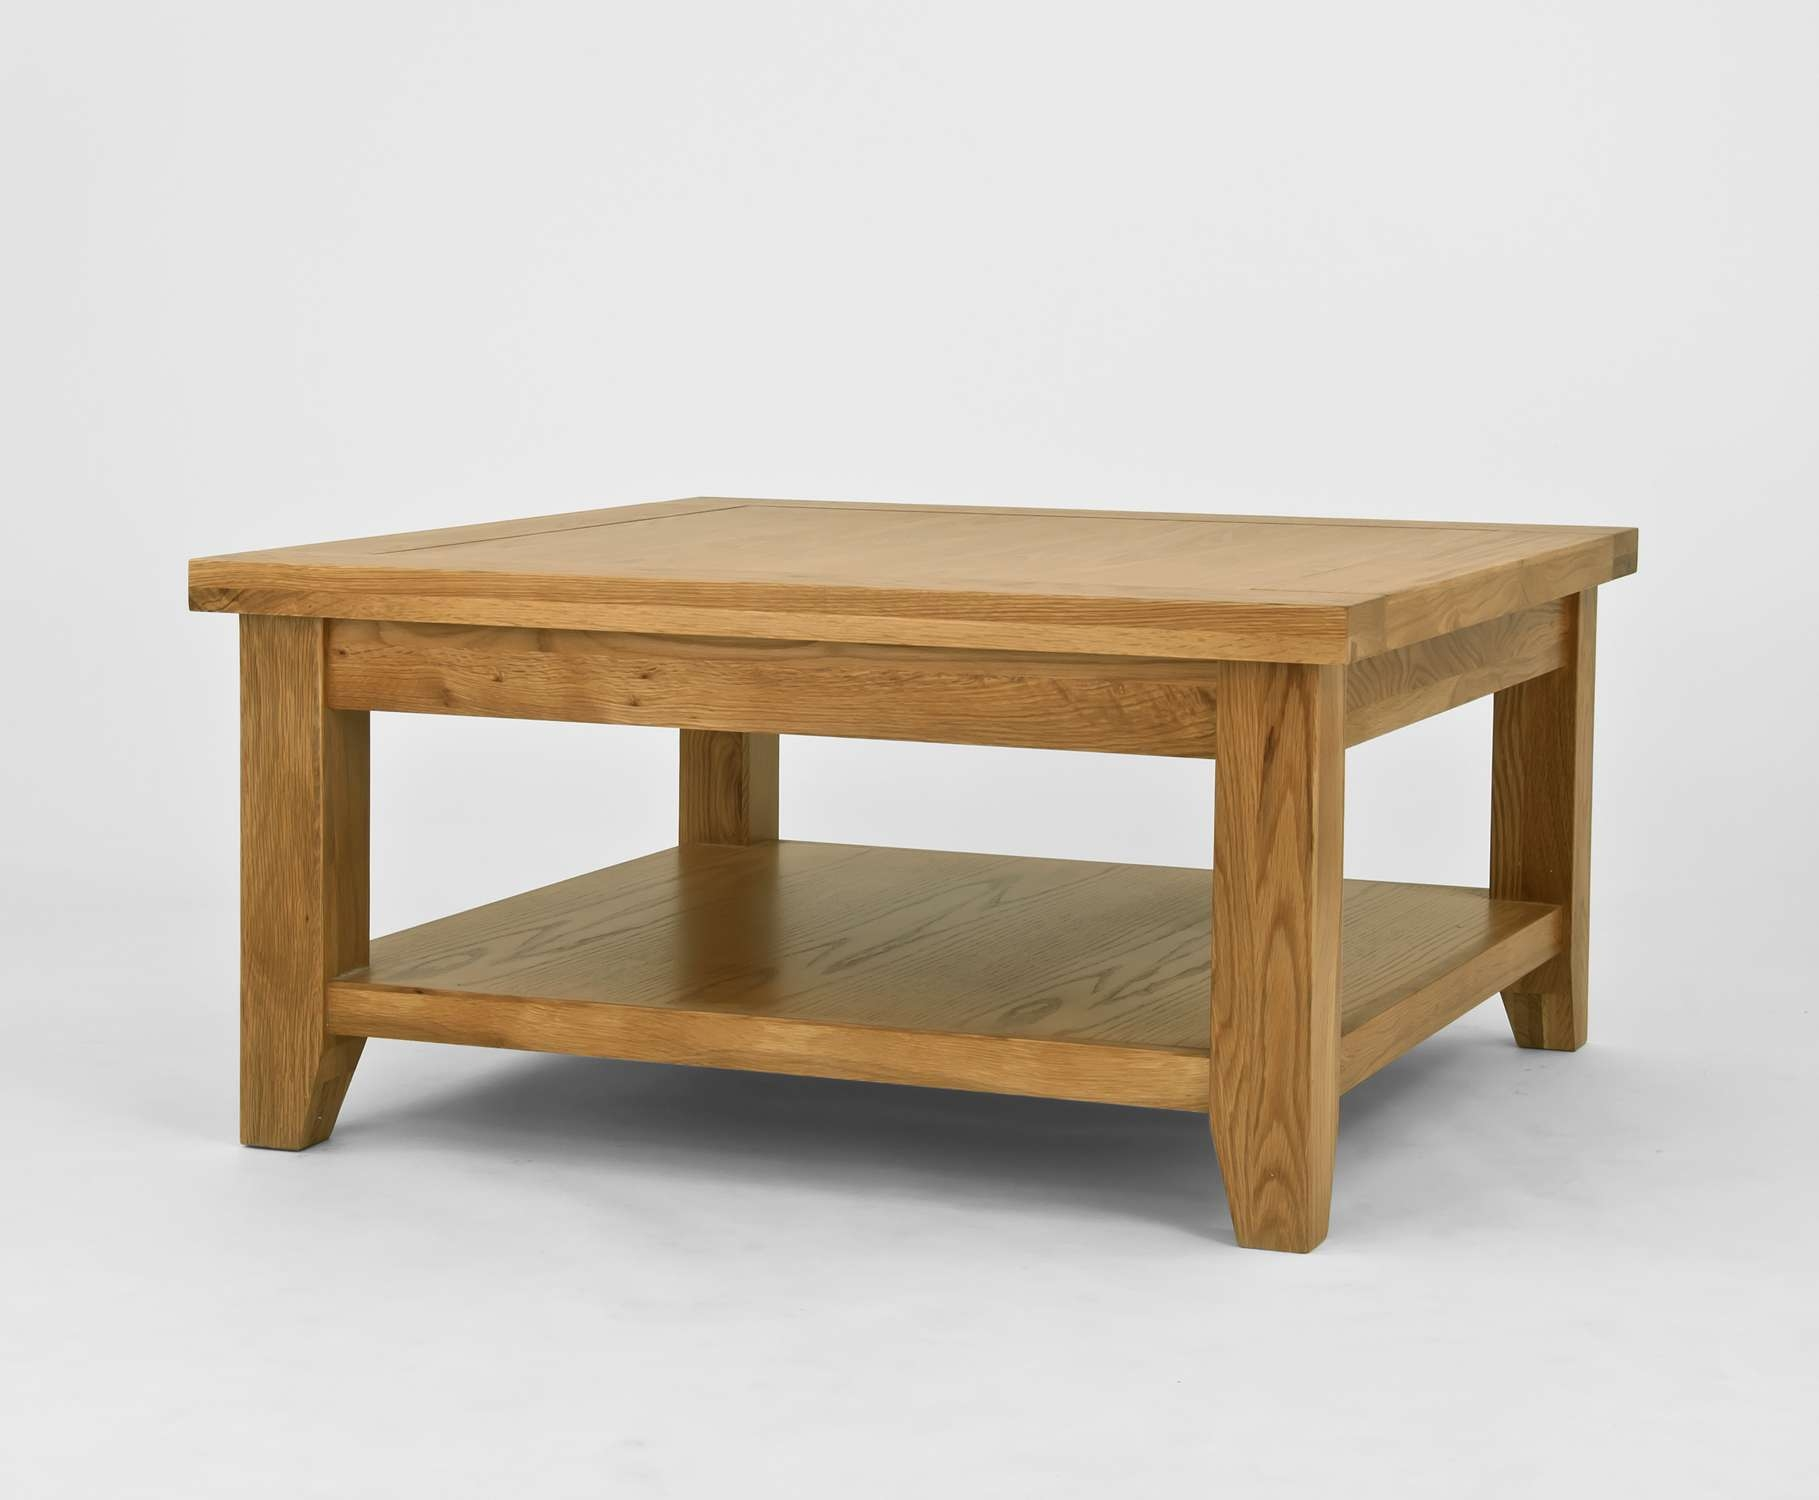 What Kind Of Floor Tiles Combined With An Oak Coffee Table? — The Regarding Most Recent Square Coffee Table Oak (View 19 of 20)